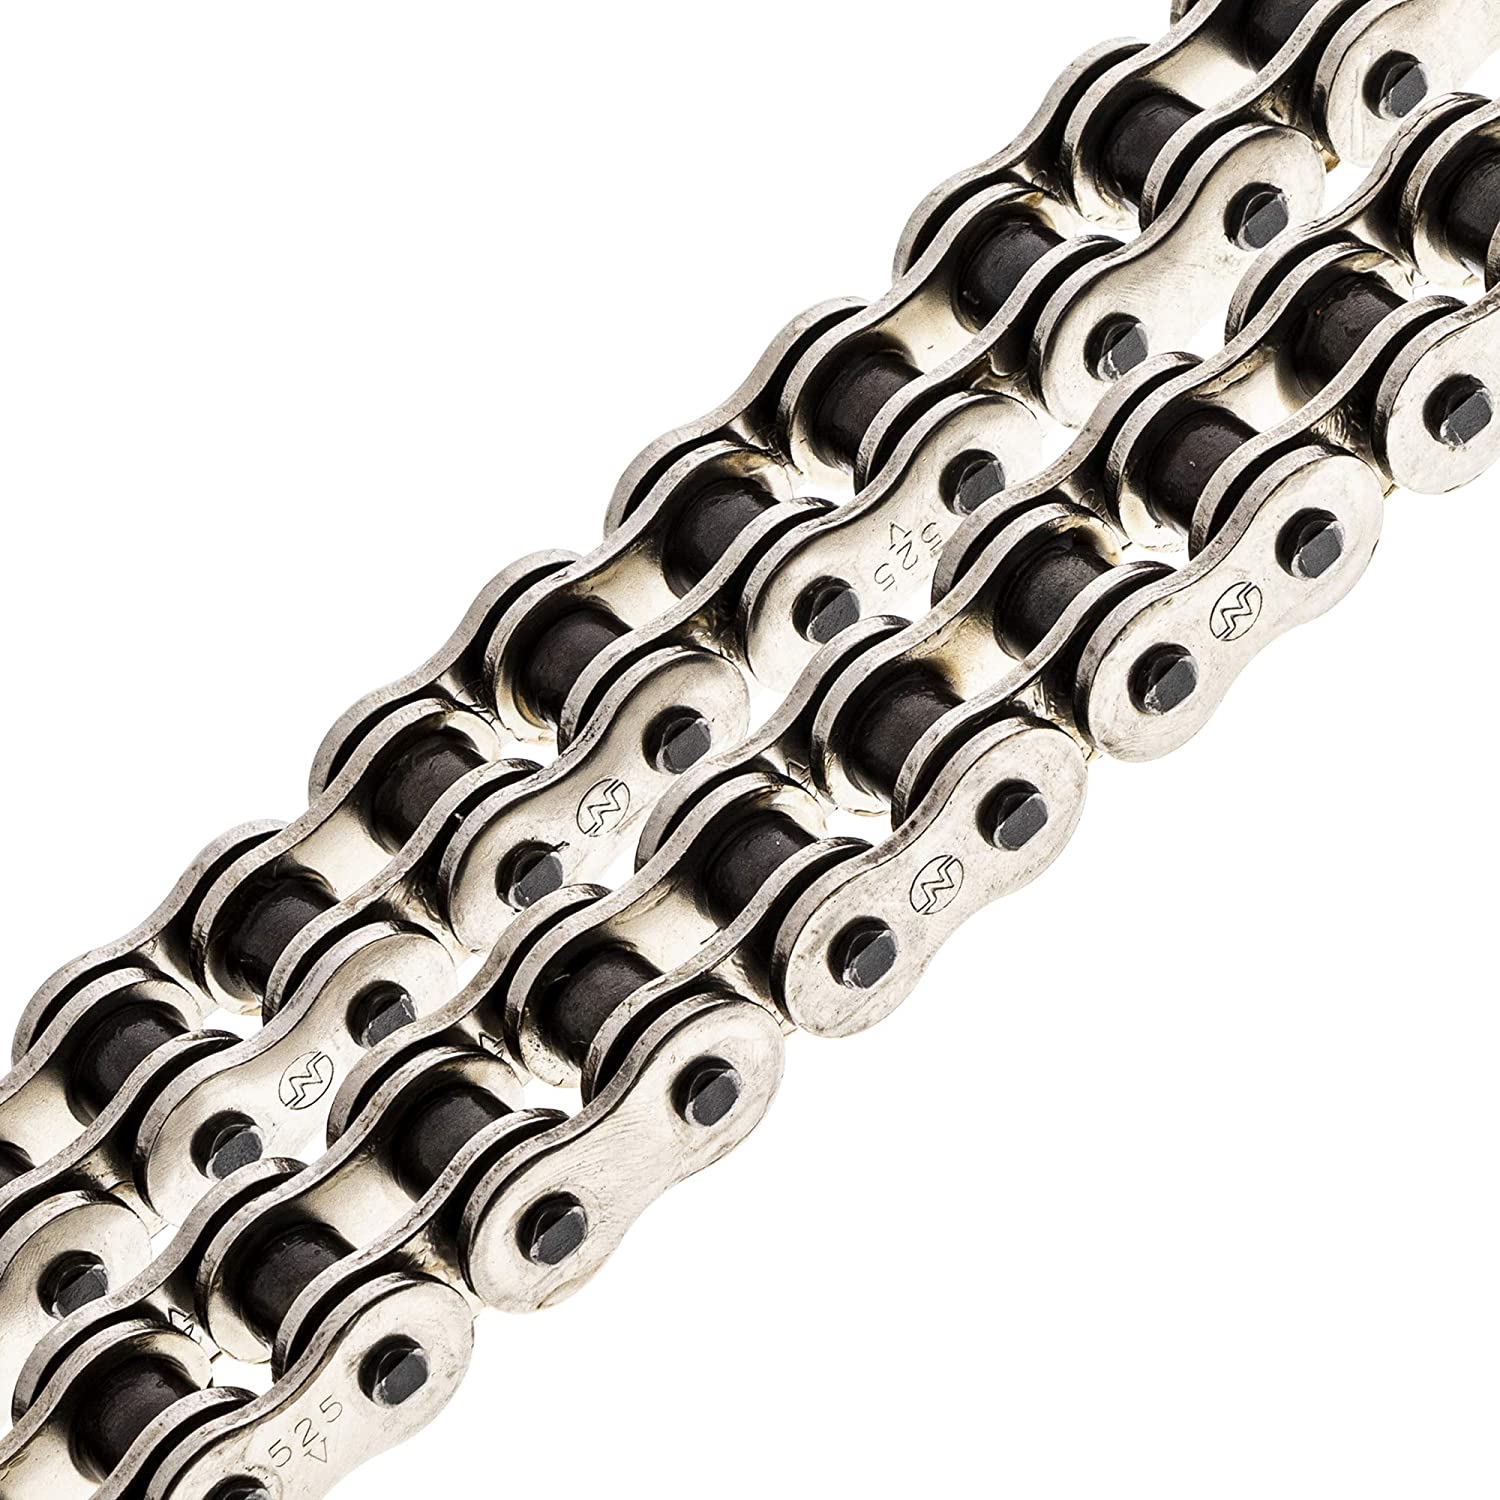 NICHE 525 Drive Chain 124 Links O-Ring With Connecting Master Link for Motorcycle ATV Dirt Bike